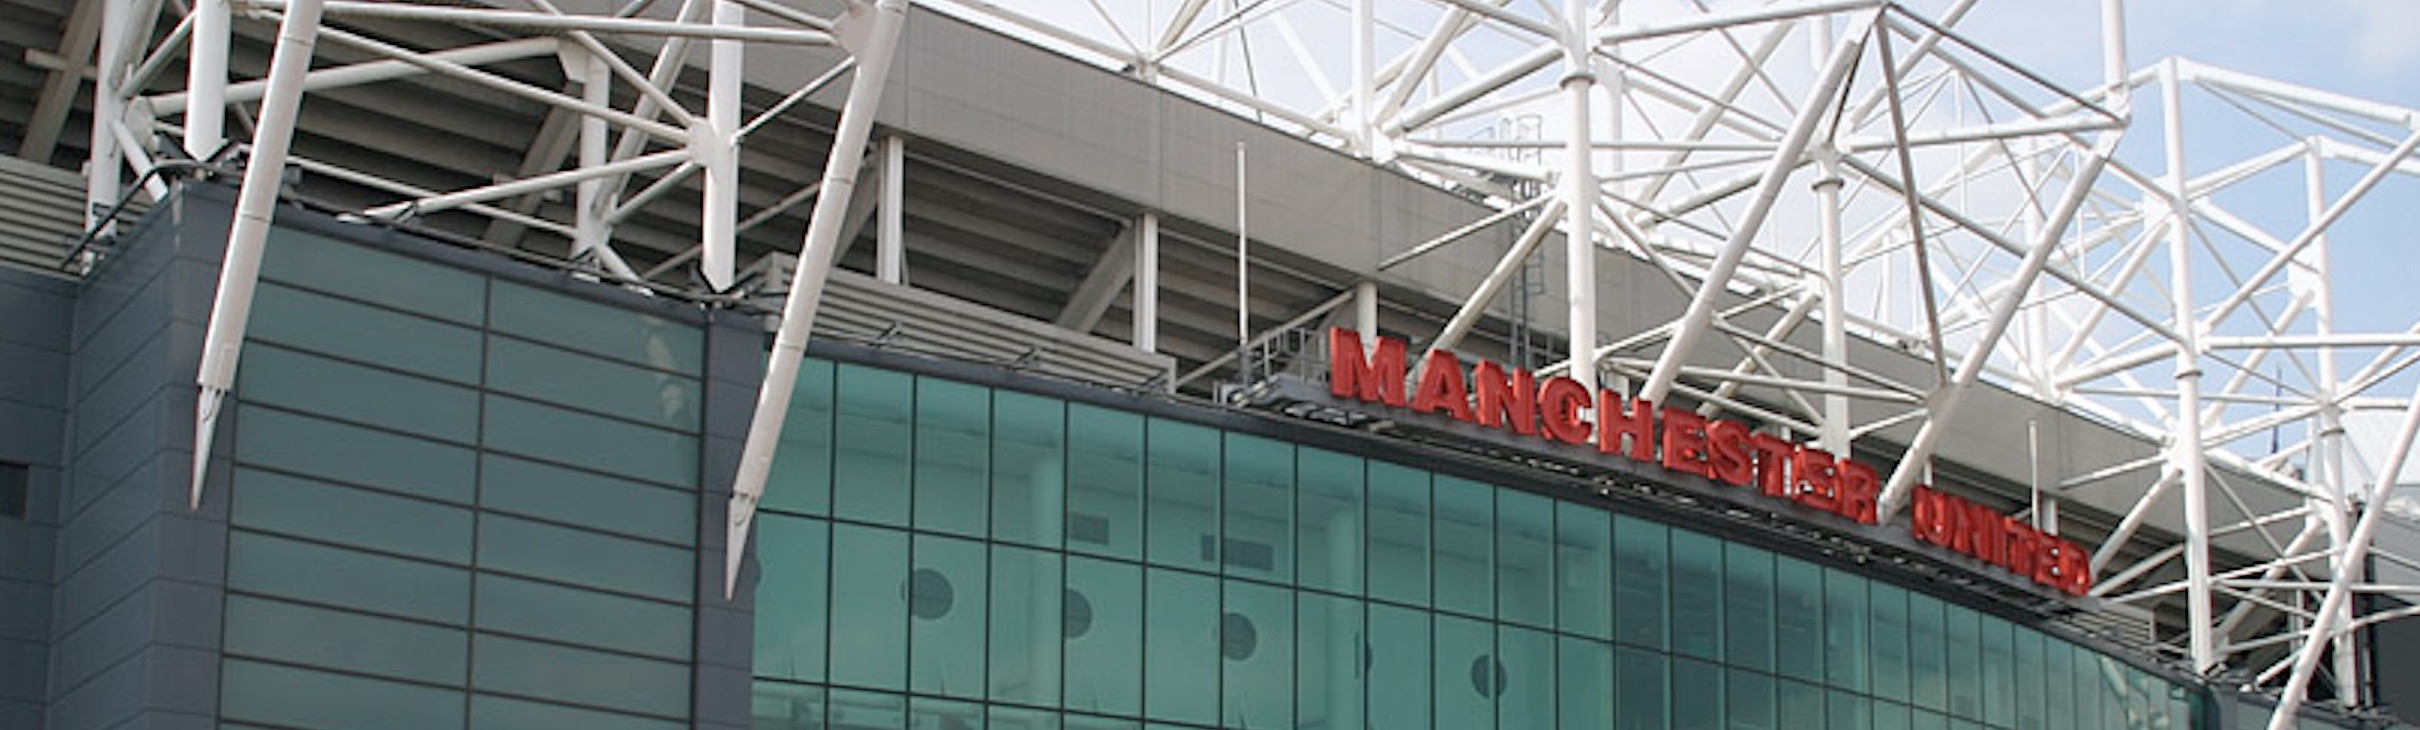 Man United V West Ham - Coach/Ferry & Hotel